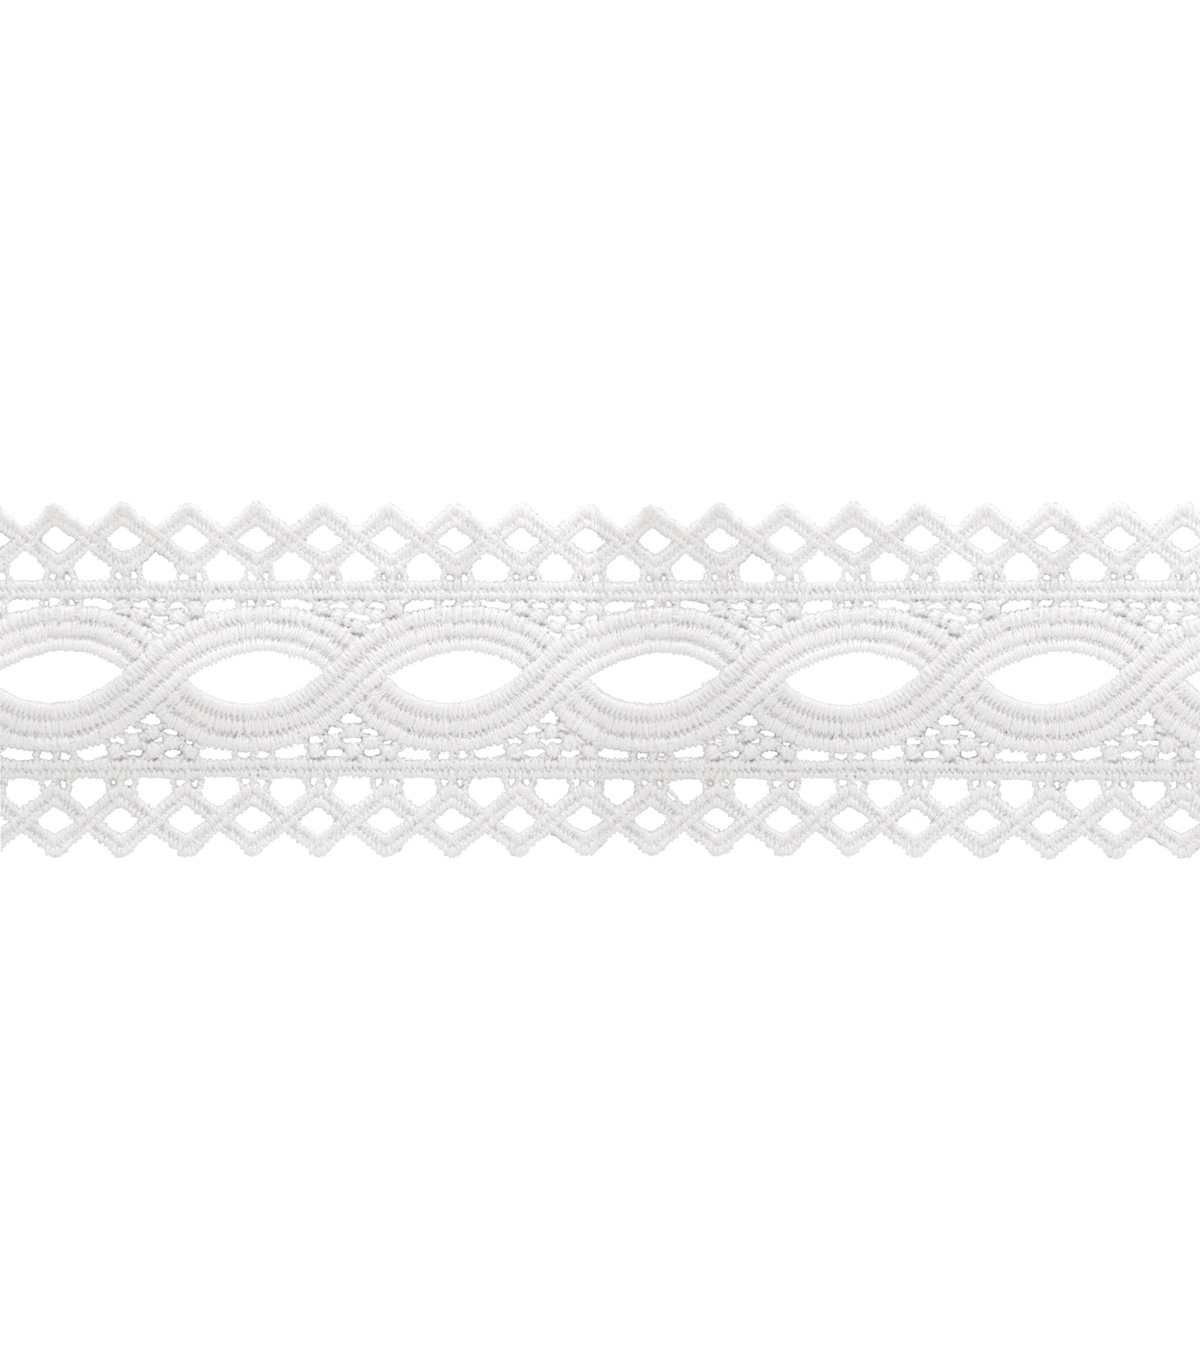 Wrights Eyelash Lace Trim 2\u0027\u0027-White